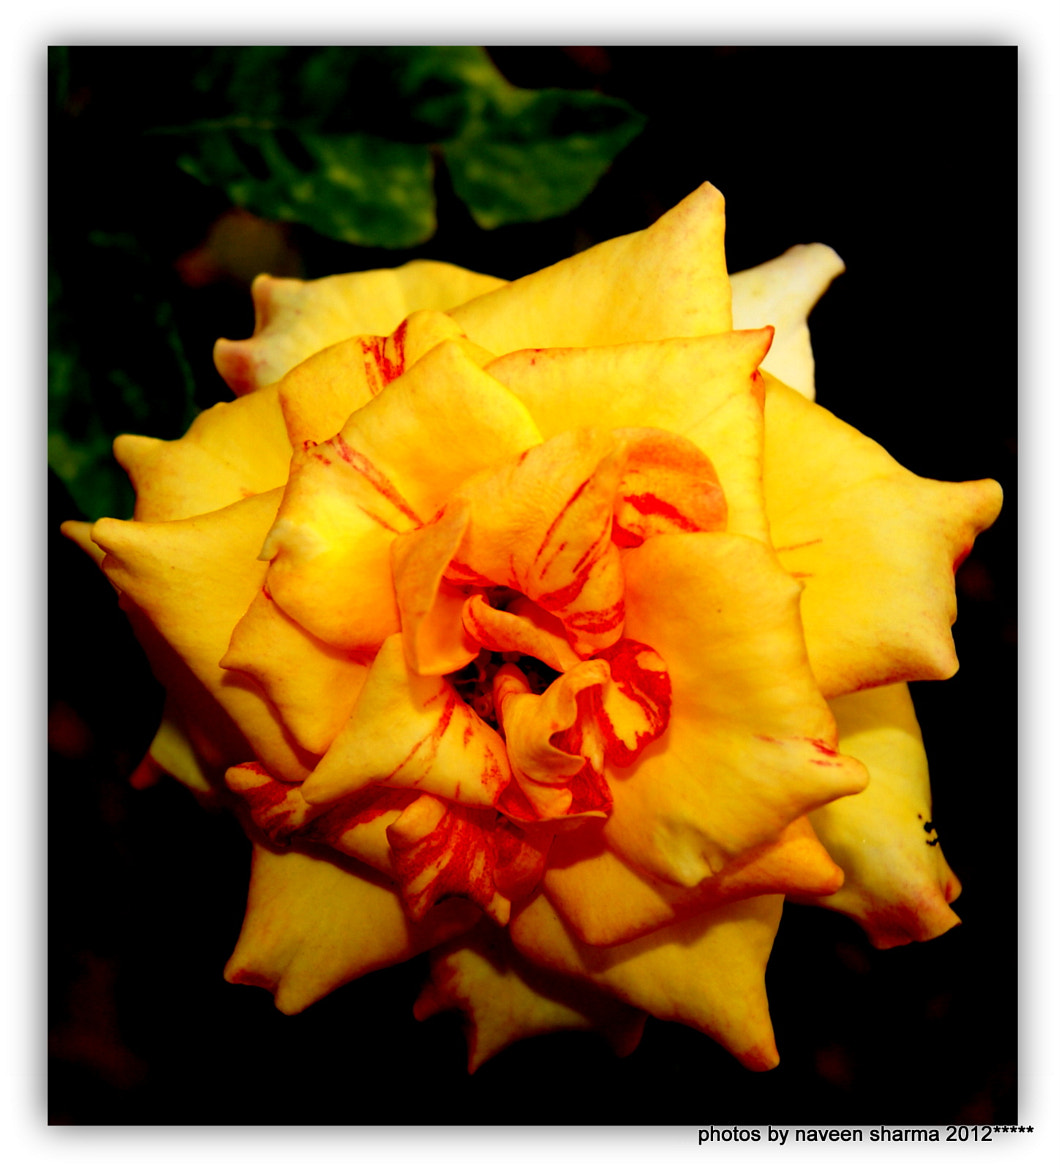 Photograph Rose flower beauty by naveen sharma on 500px